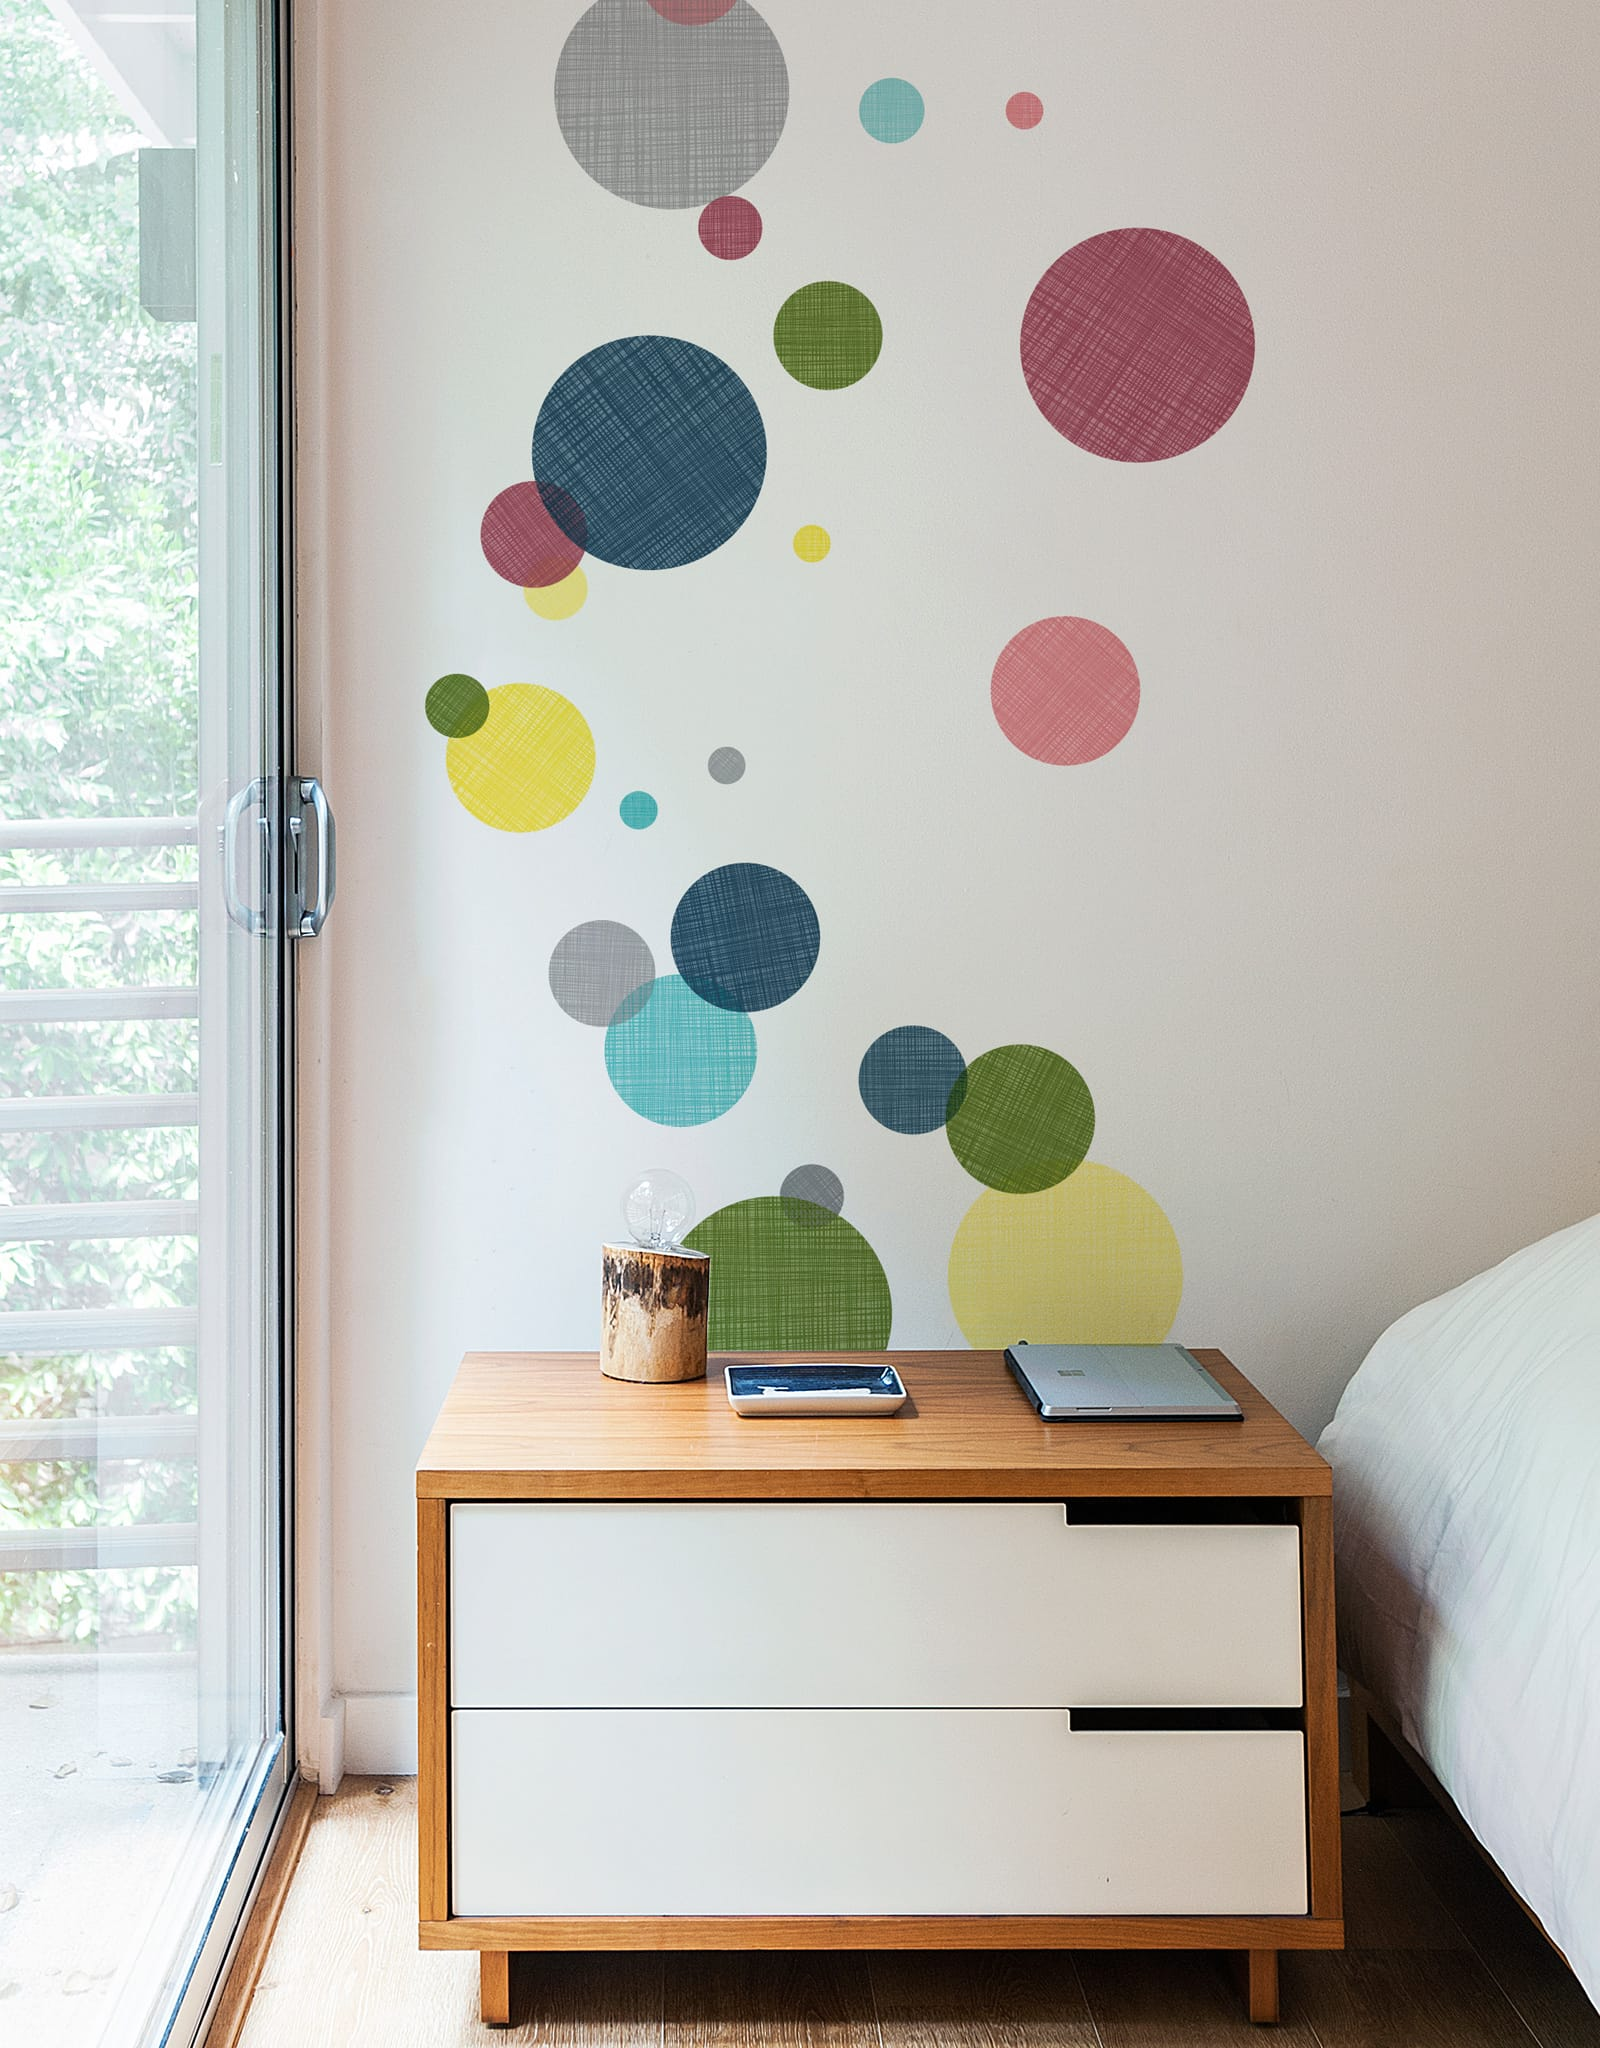 BLIK: Self Adhesive, Removable Wall Decals And Artful Home Goods ...